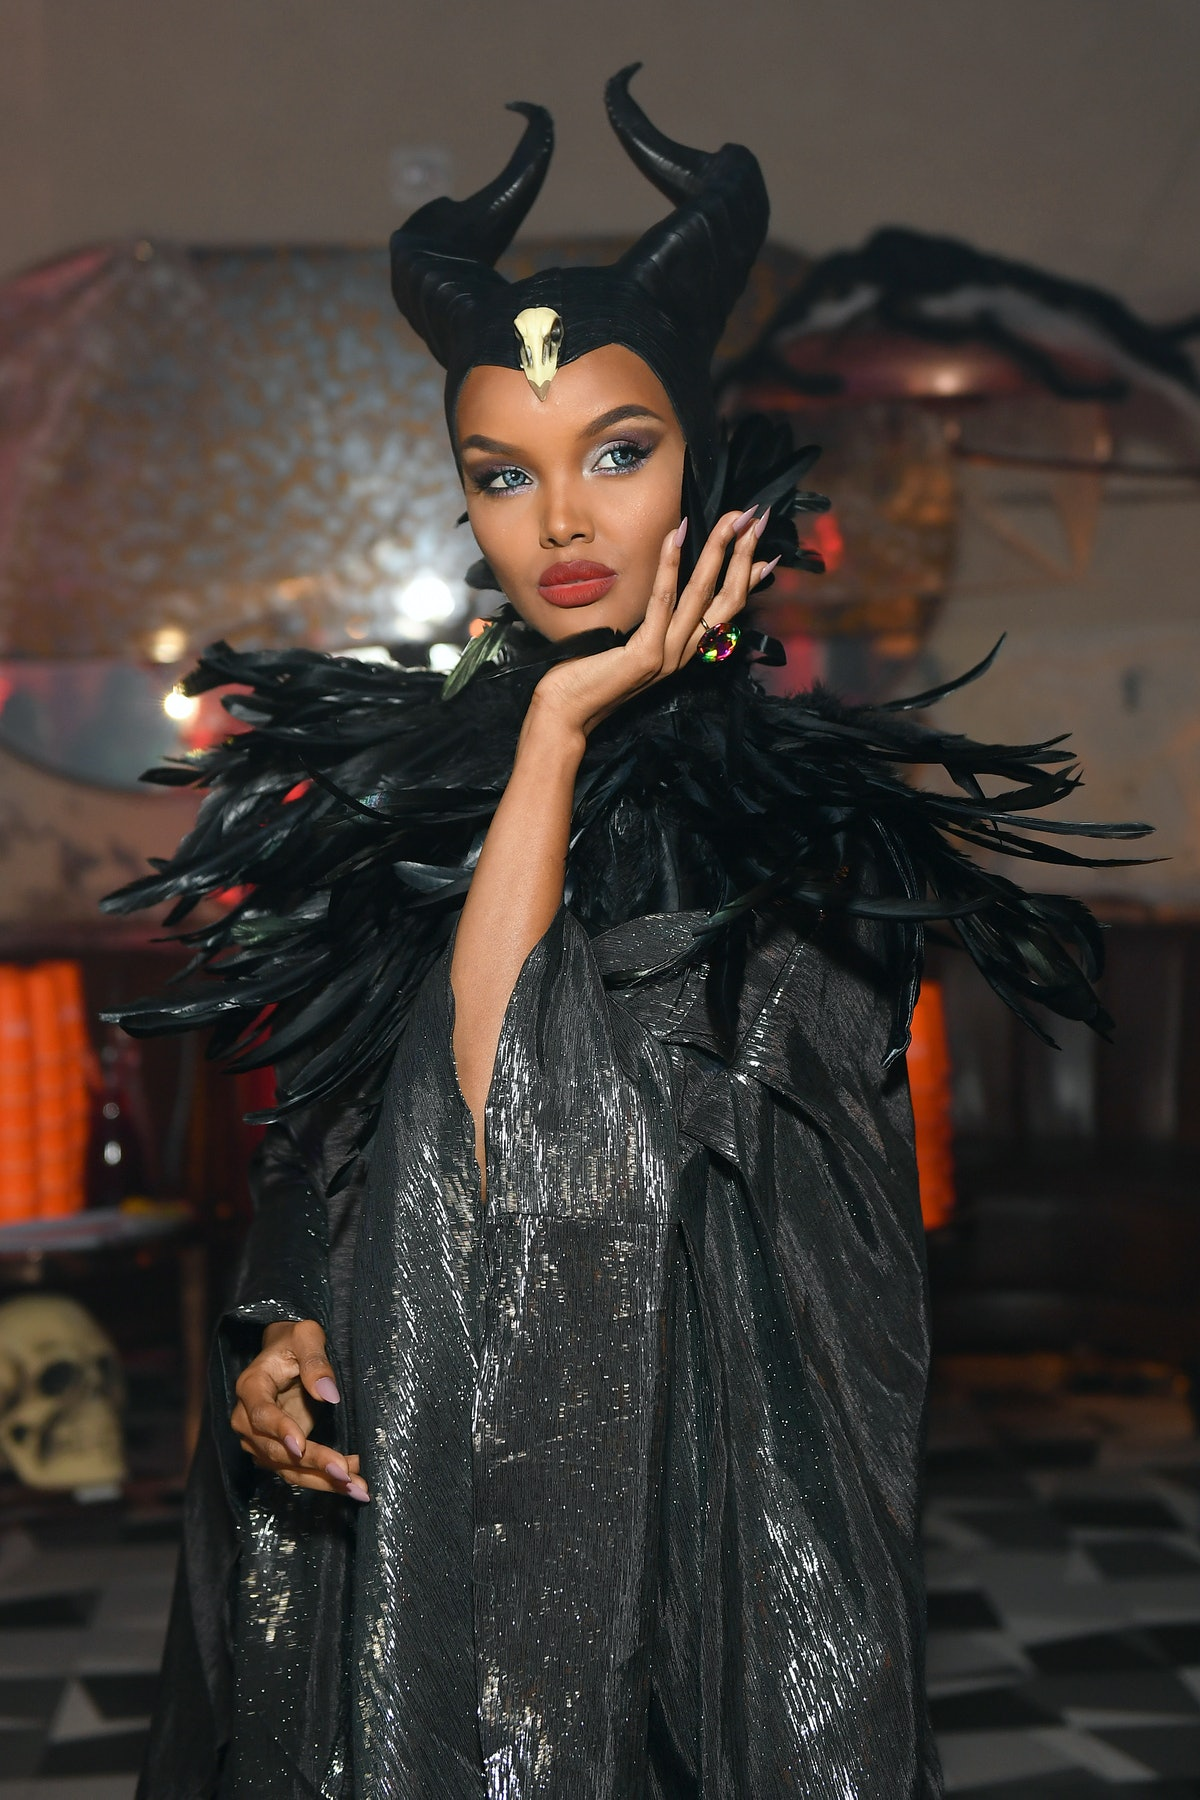 Heidi Klum's 20th Annual Halloween Party Presented By Amazon Prime Video And SVEDKA Vodka At Cathédrale New York - Inside